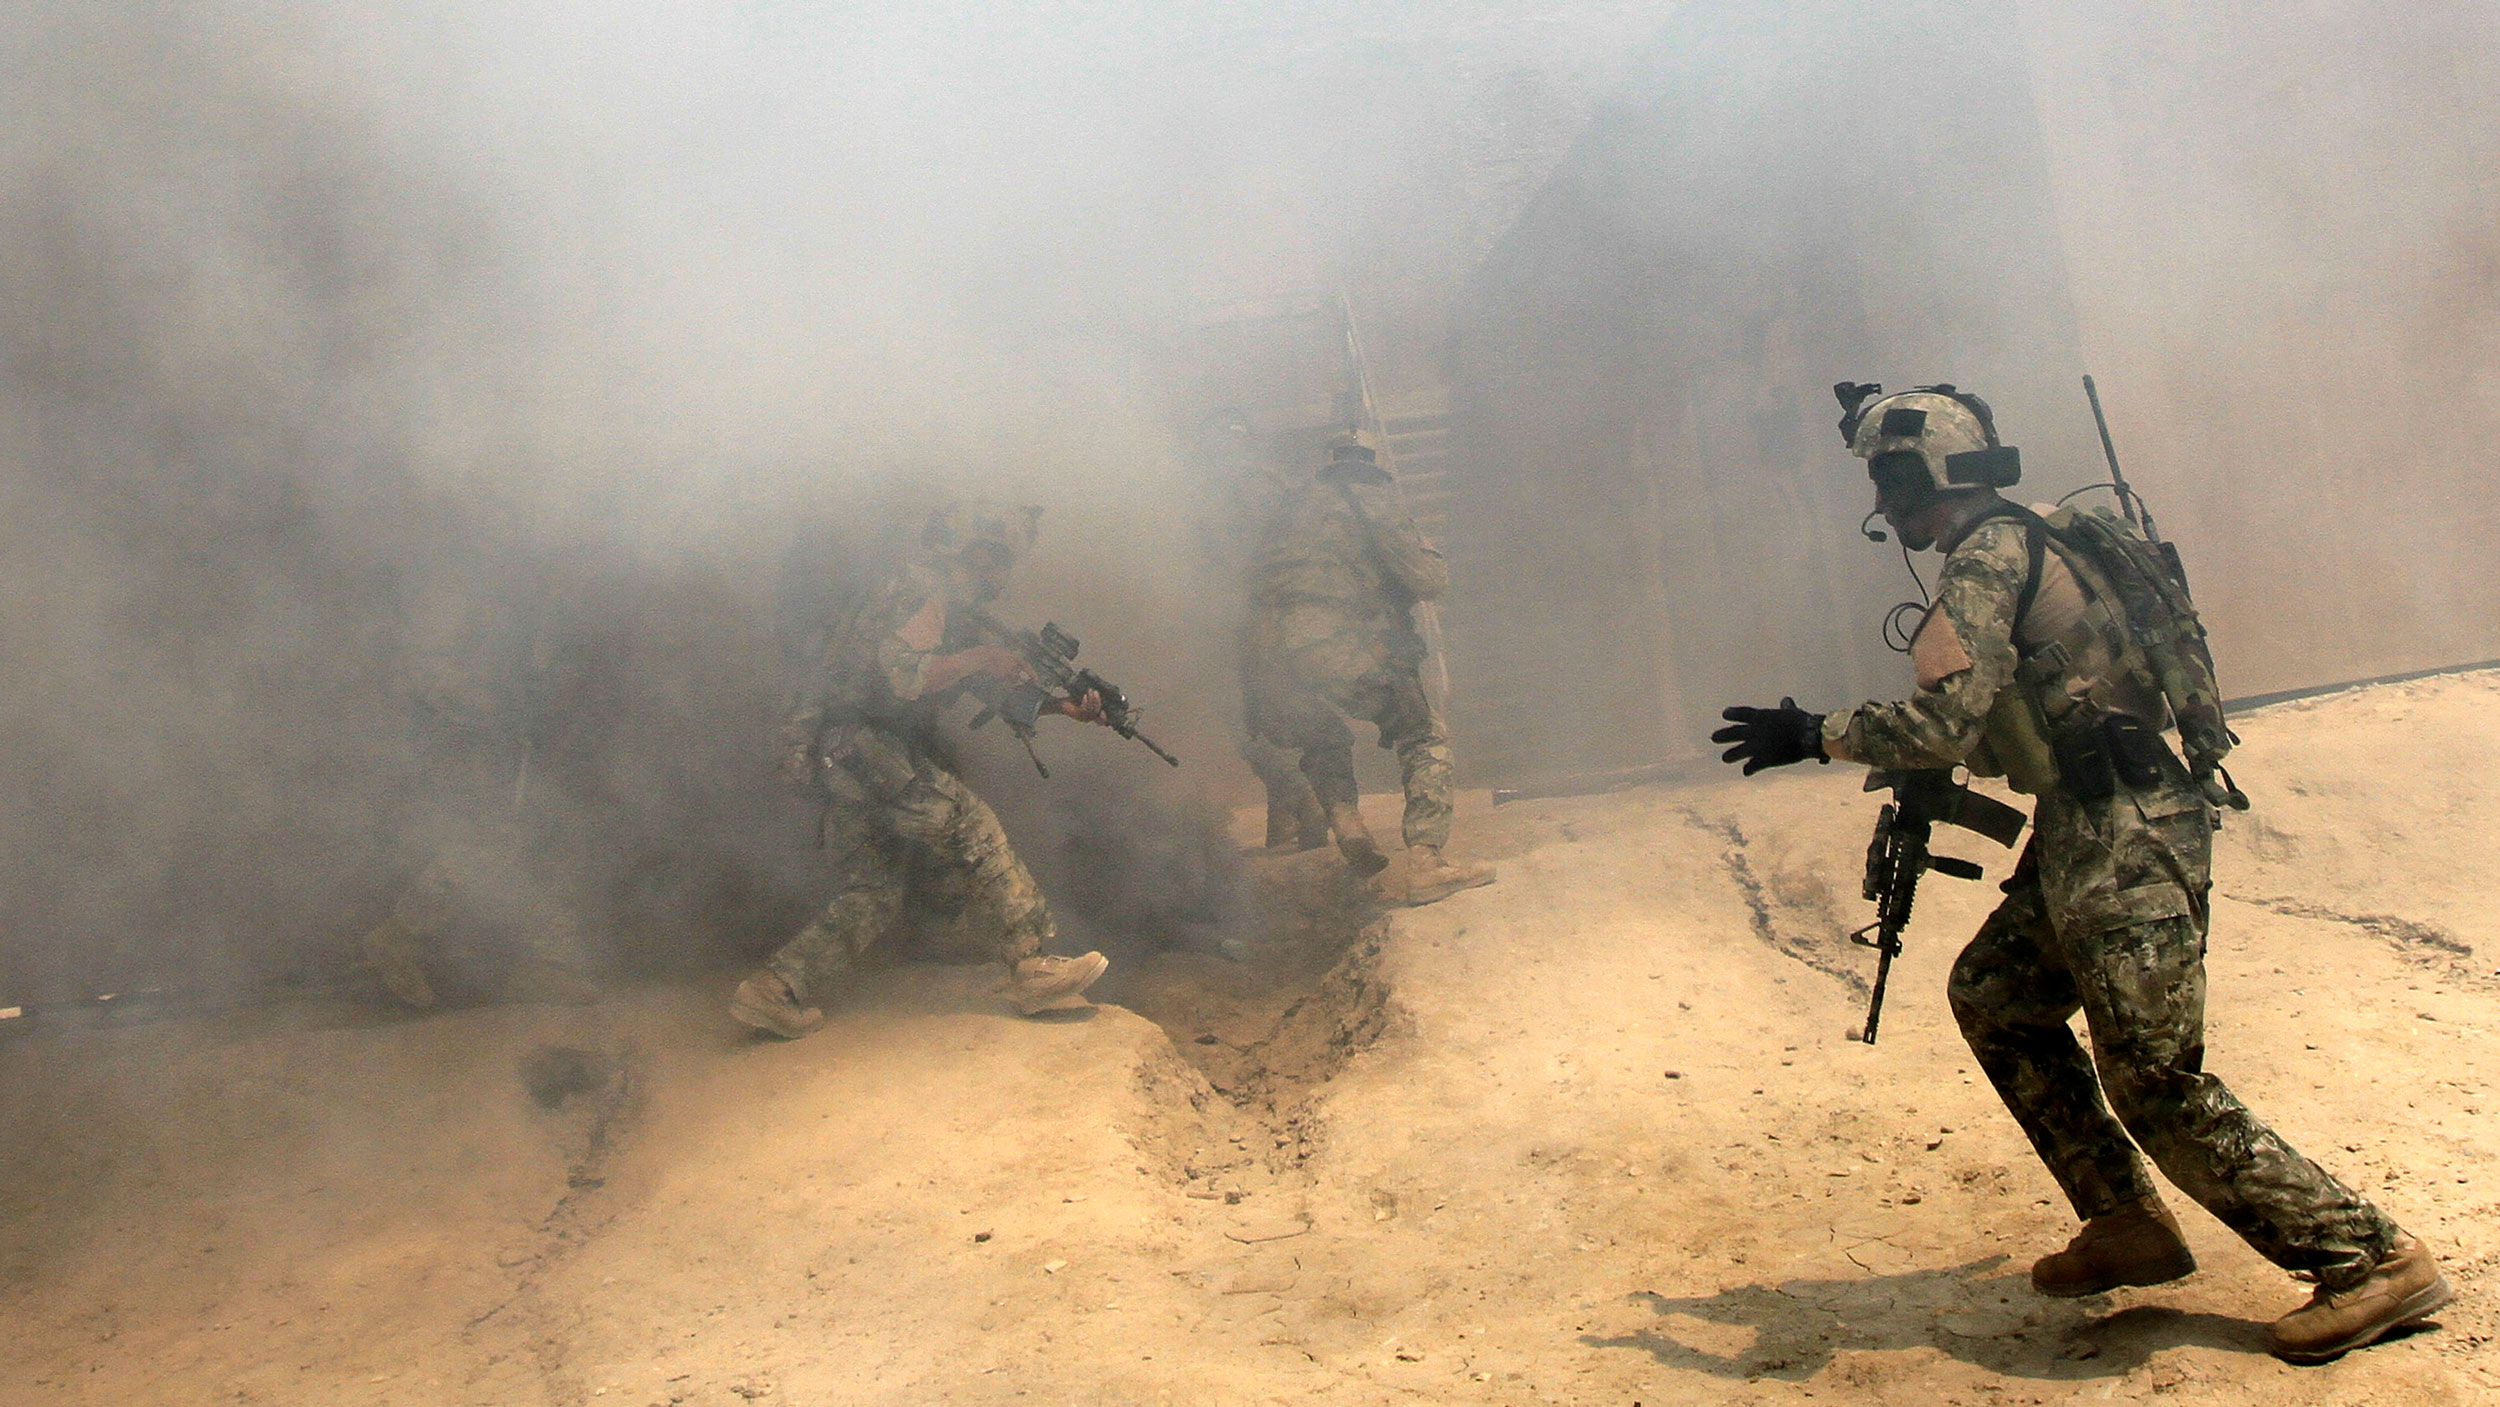 Men in military uniforms hold weapons and are walking into smoke inside building.